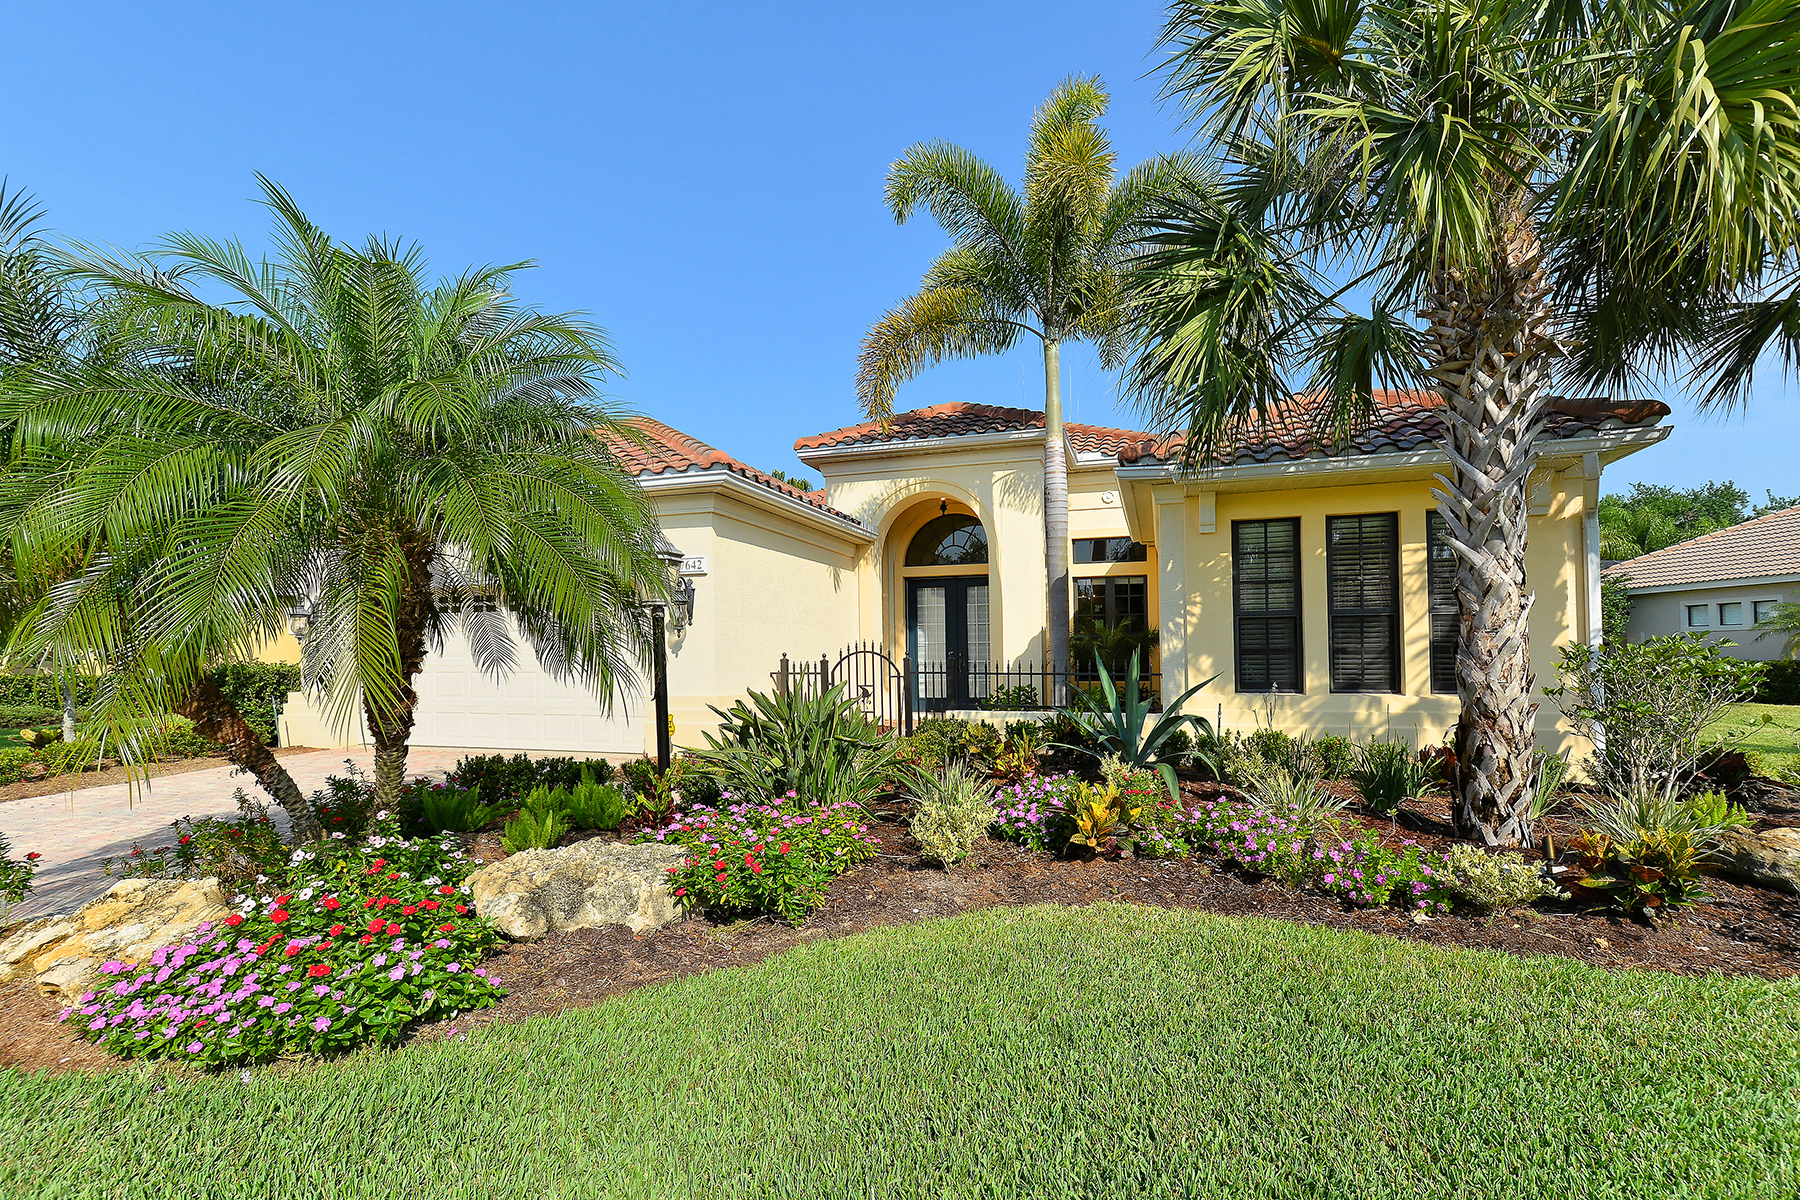 Single Family Home for Sale at LAKEWOOD RANCH 7642 Silverwood Ct Lakewood Ranch, Florida, 34202 United States